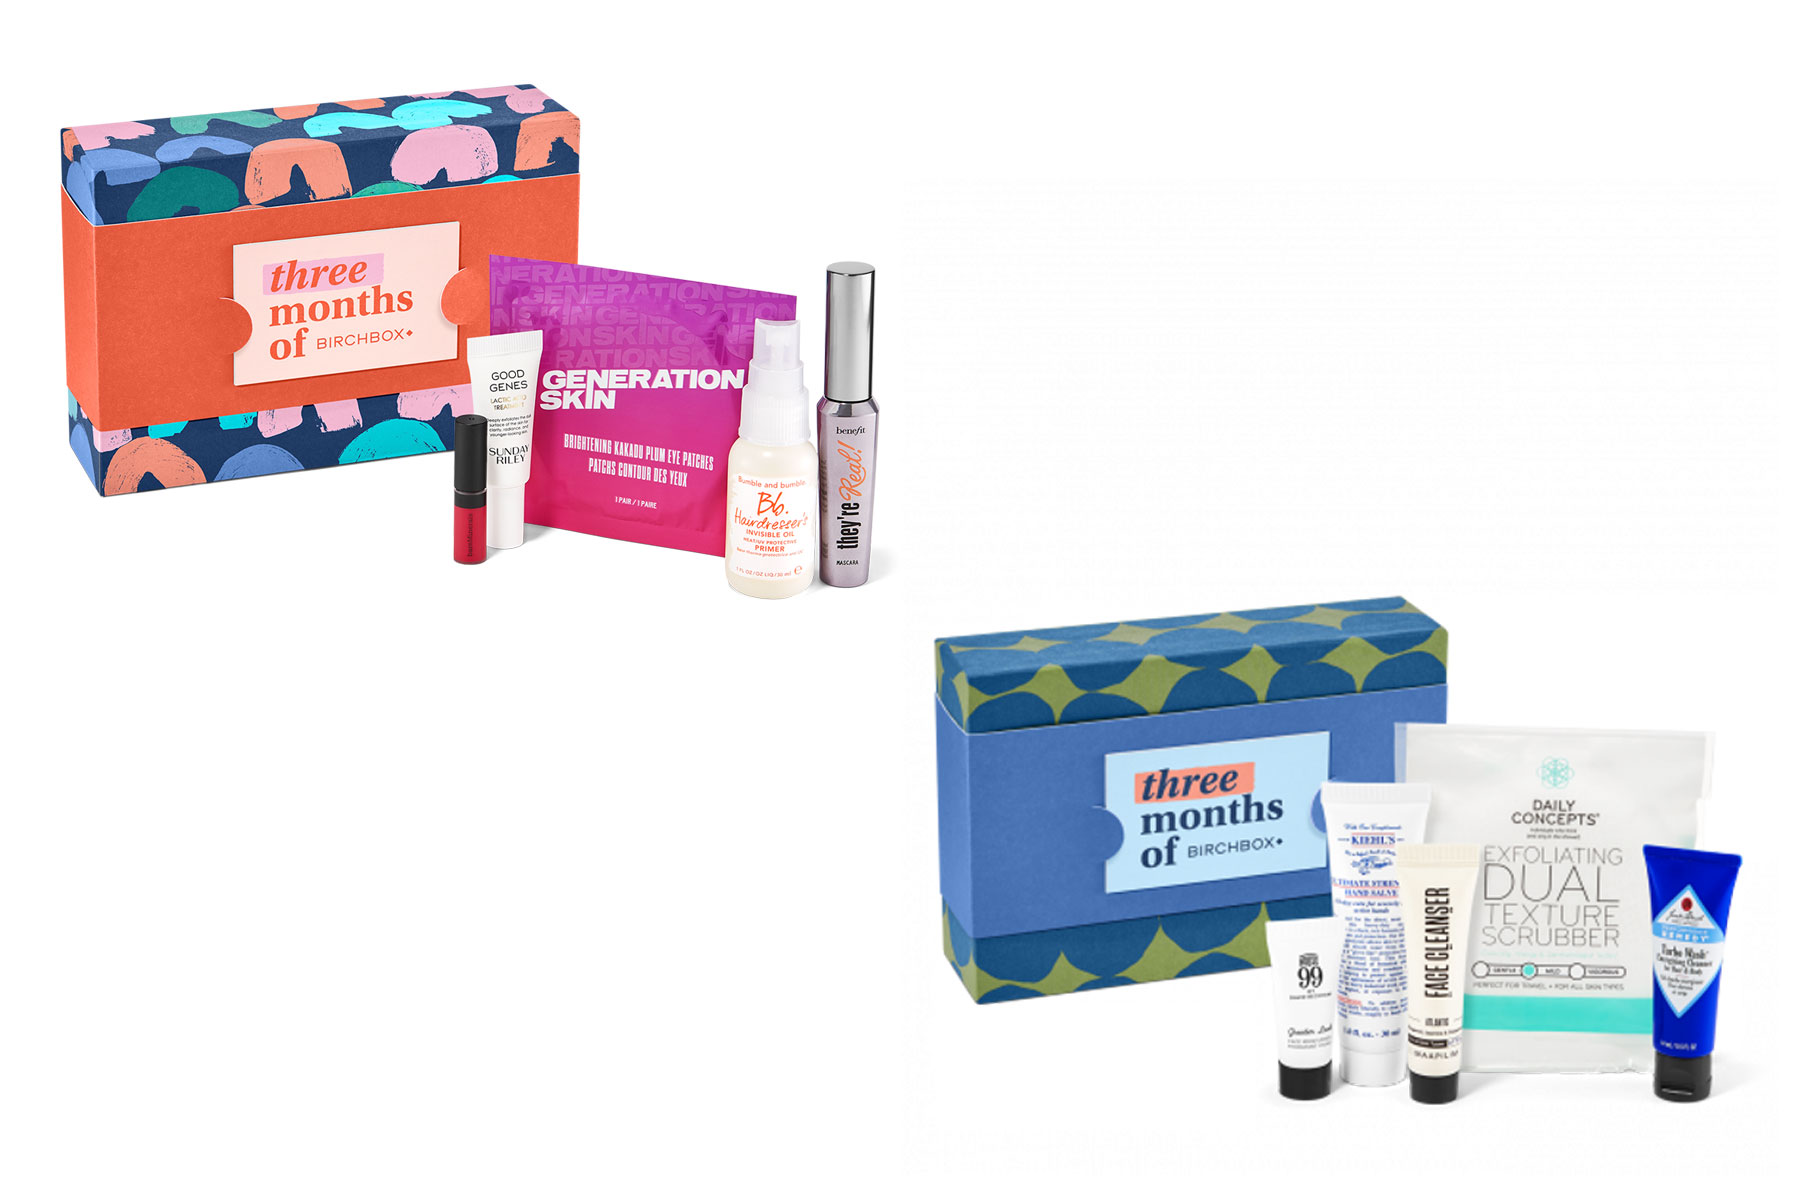 Could there be a more convenient way to stock a Dopp kit? With Birchbox, recipients will receive monthly boxes of travel-sized skincare, grooming, or makeup products from trusted brands like Kiehl's and Benefit Cosmetics. P.S. We've got plenty more subscription gift ideas travelers will love.To buy: (men) birchbox.com, from $30 for three months (women) birchbox.com, from $45 for three months